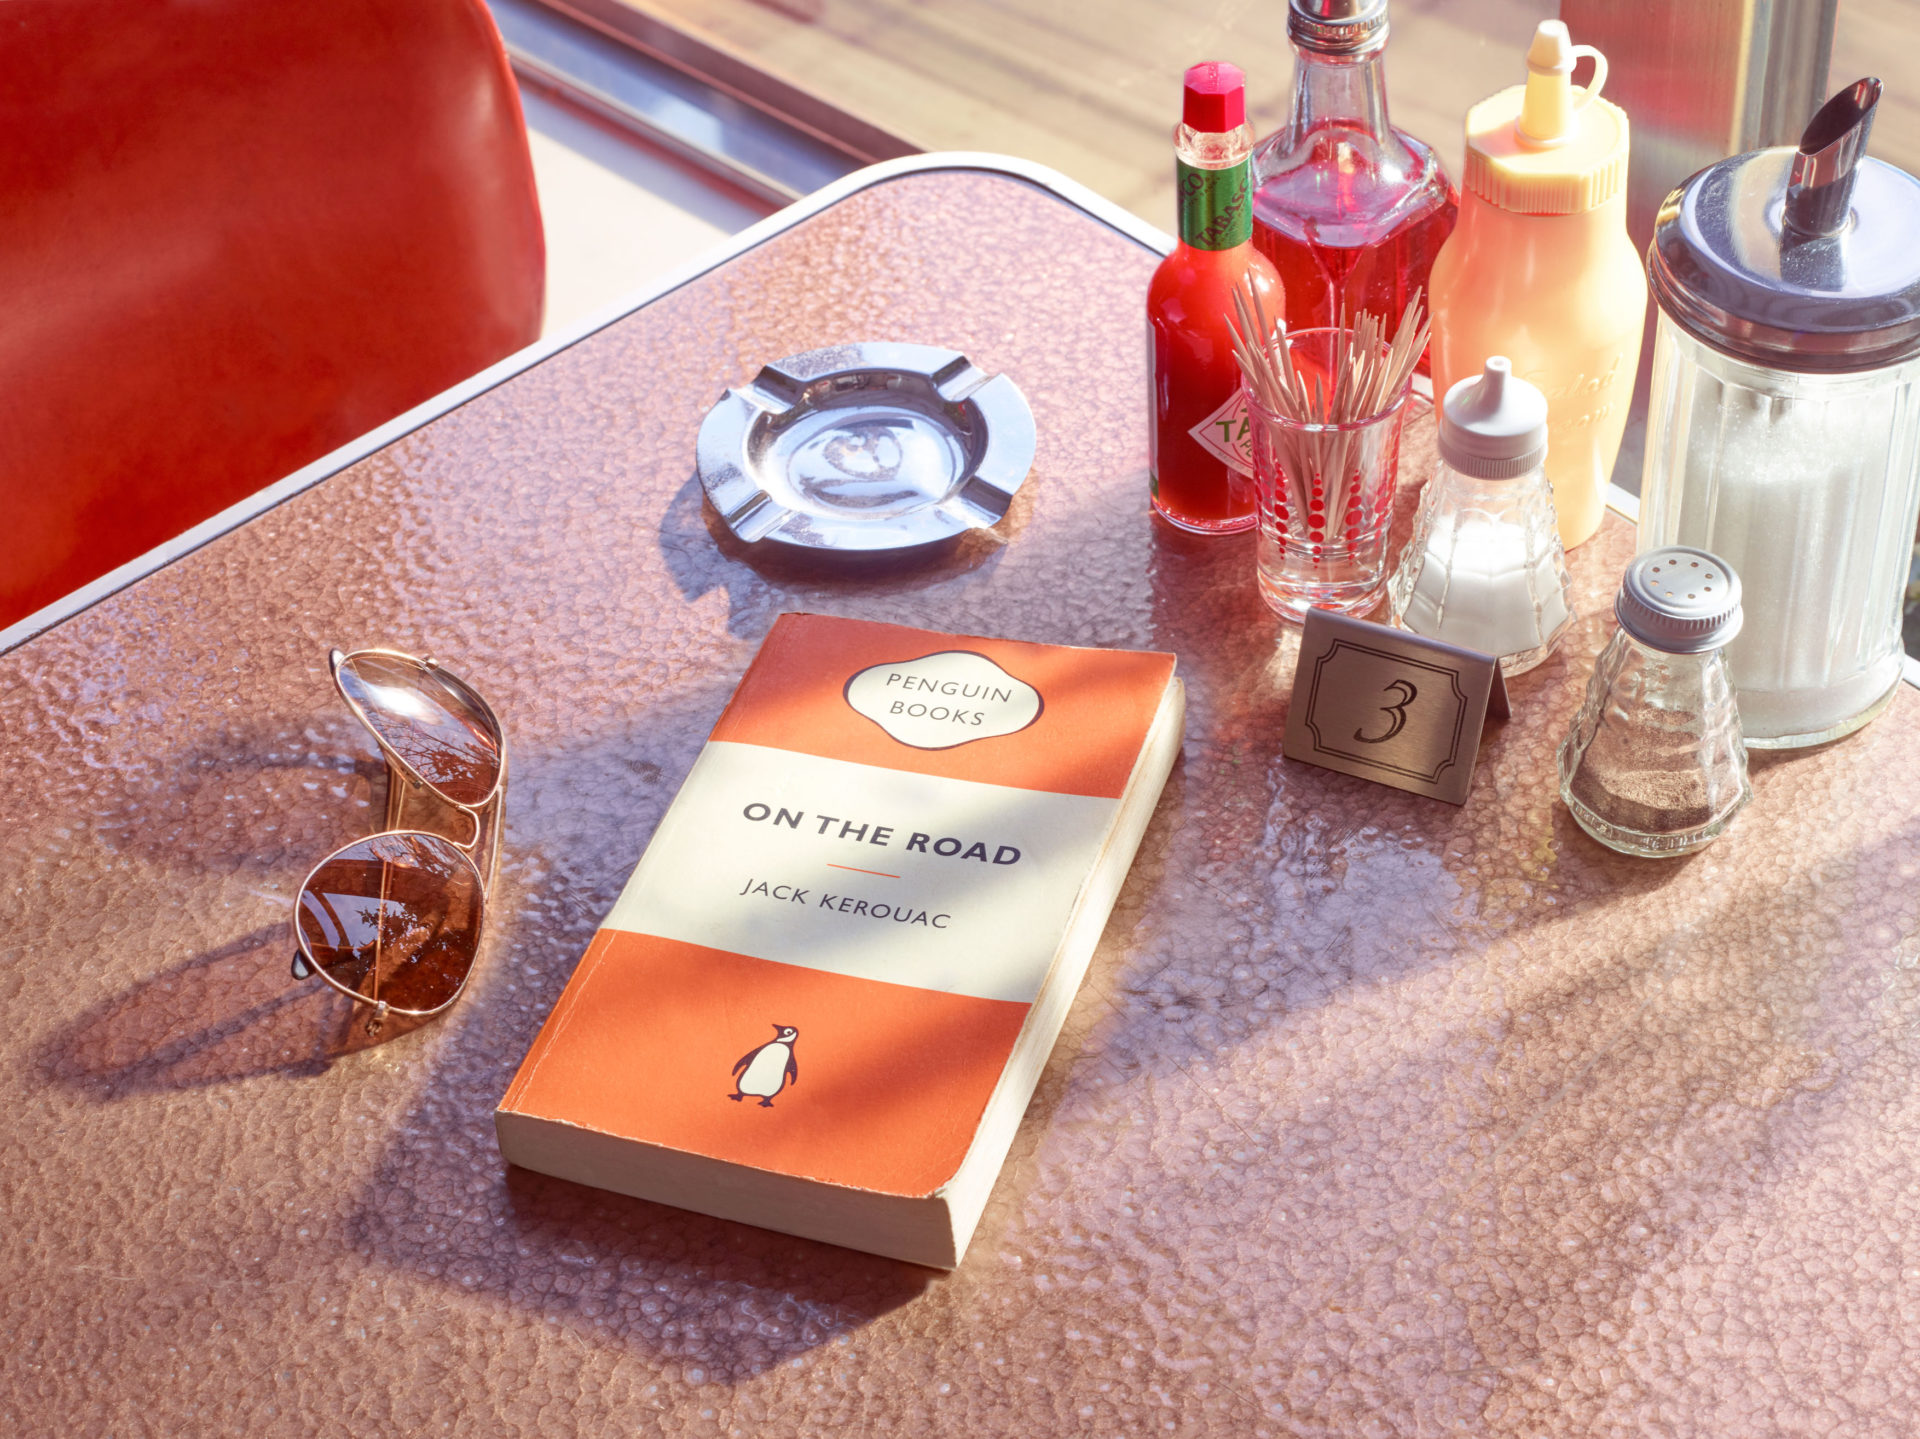 – Shaw & Shaw Photography – Shaw and Shaw Photographers Manchester – advertising photographers – graphic image – Book Club – Jack Kerouac On the Road – Penguin Books – diner – William Eggleston – Joel Sternfeld – Stephen Shore